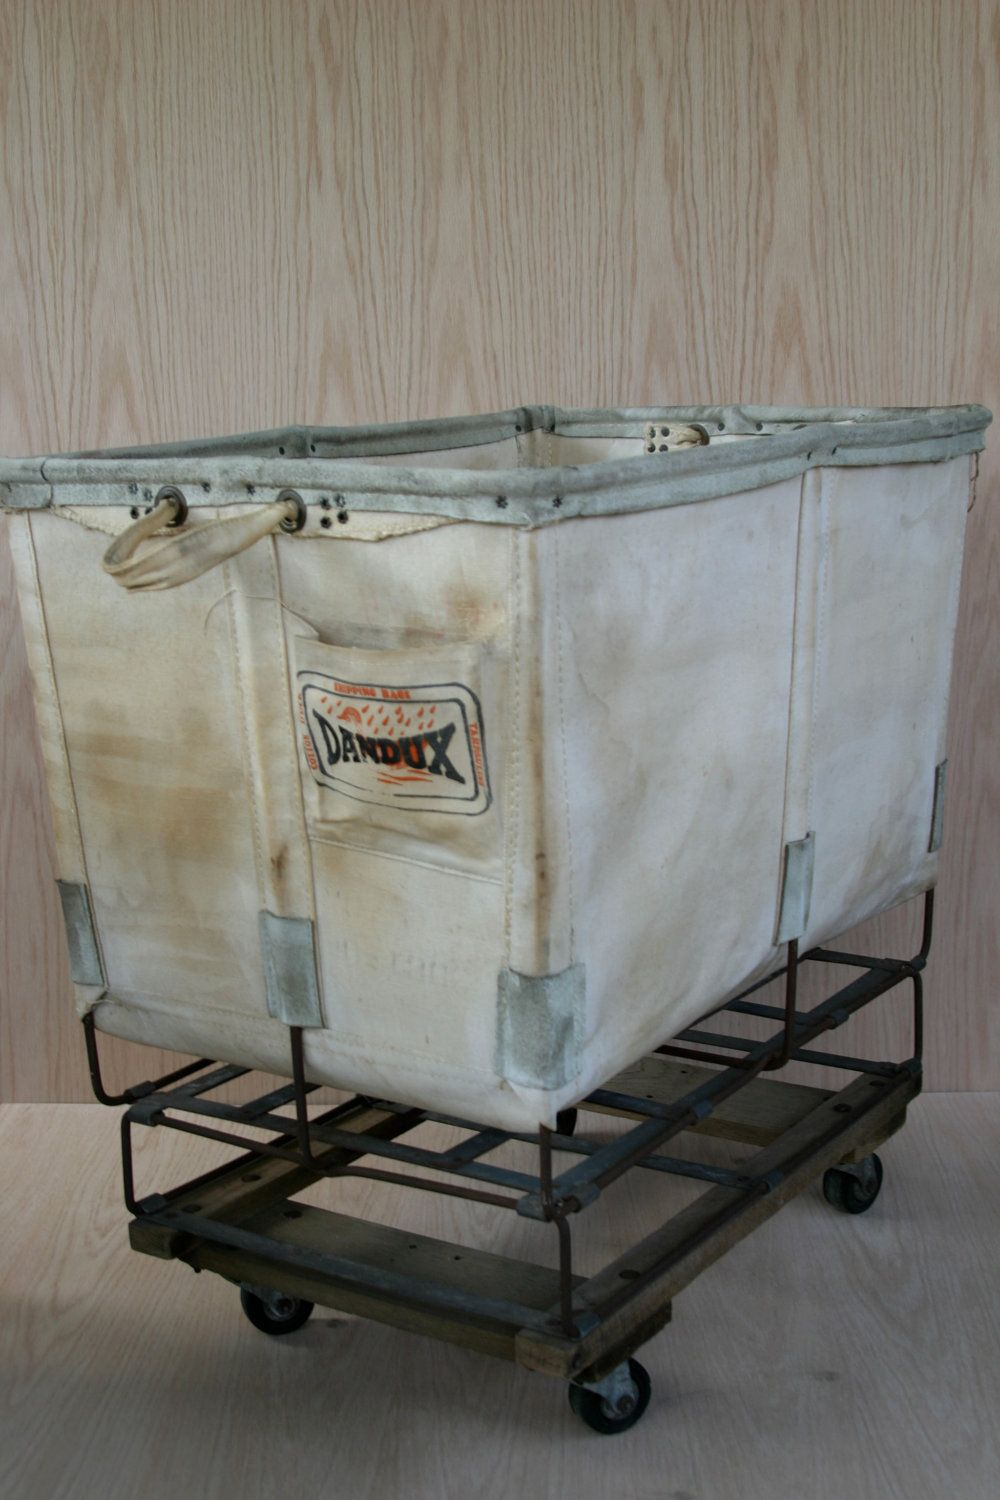 Items Similar To Vintage Dandux Laundry Cart On Etsy Laundry Cart Laundry Vintage